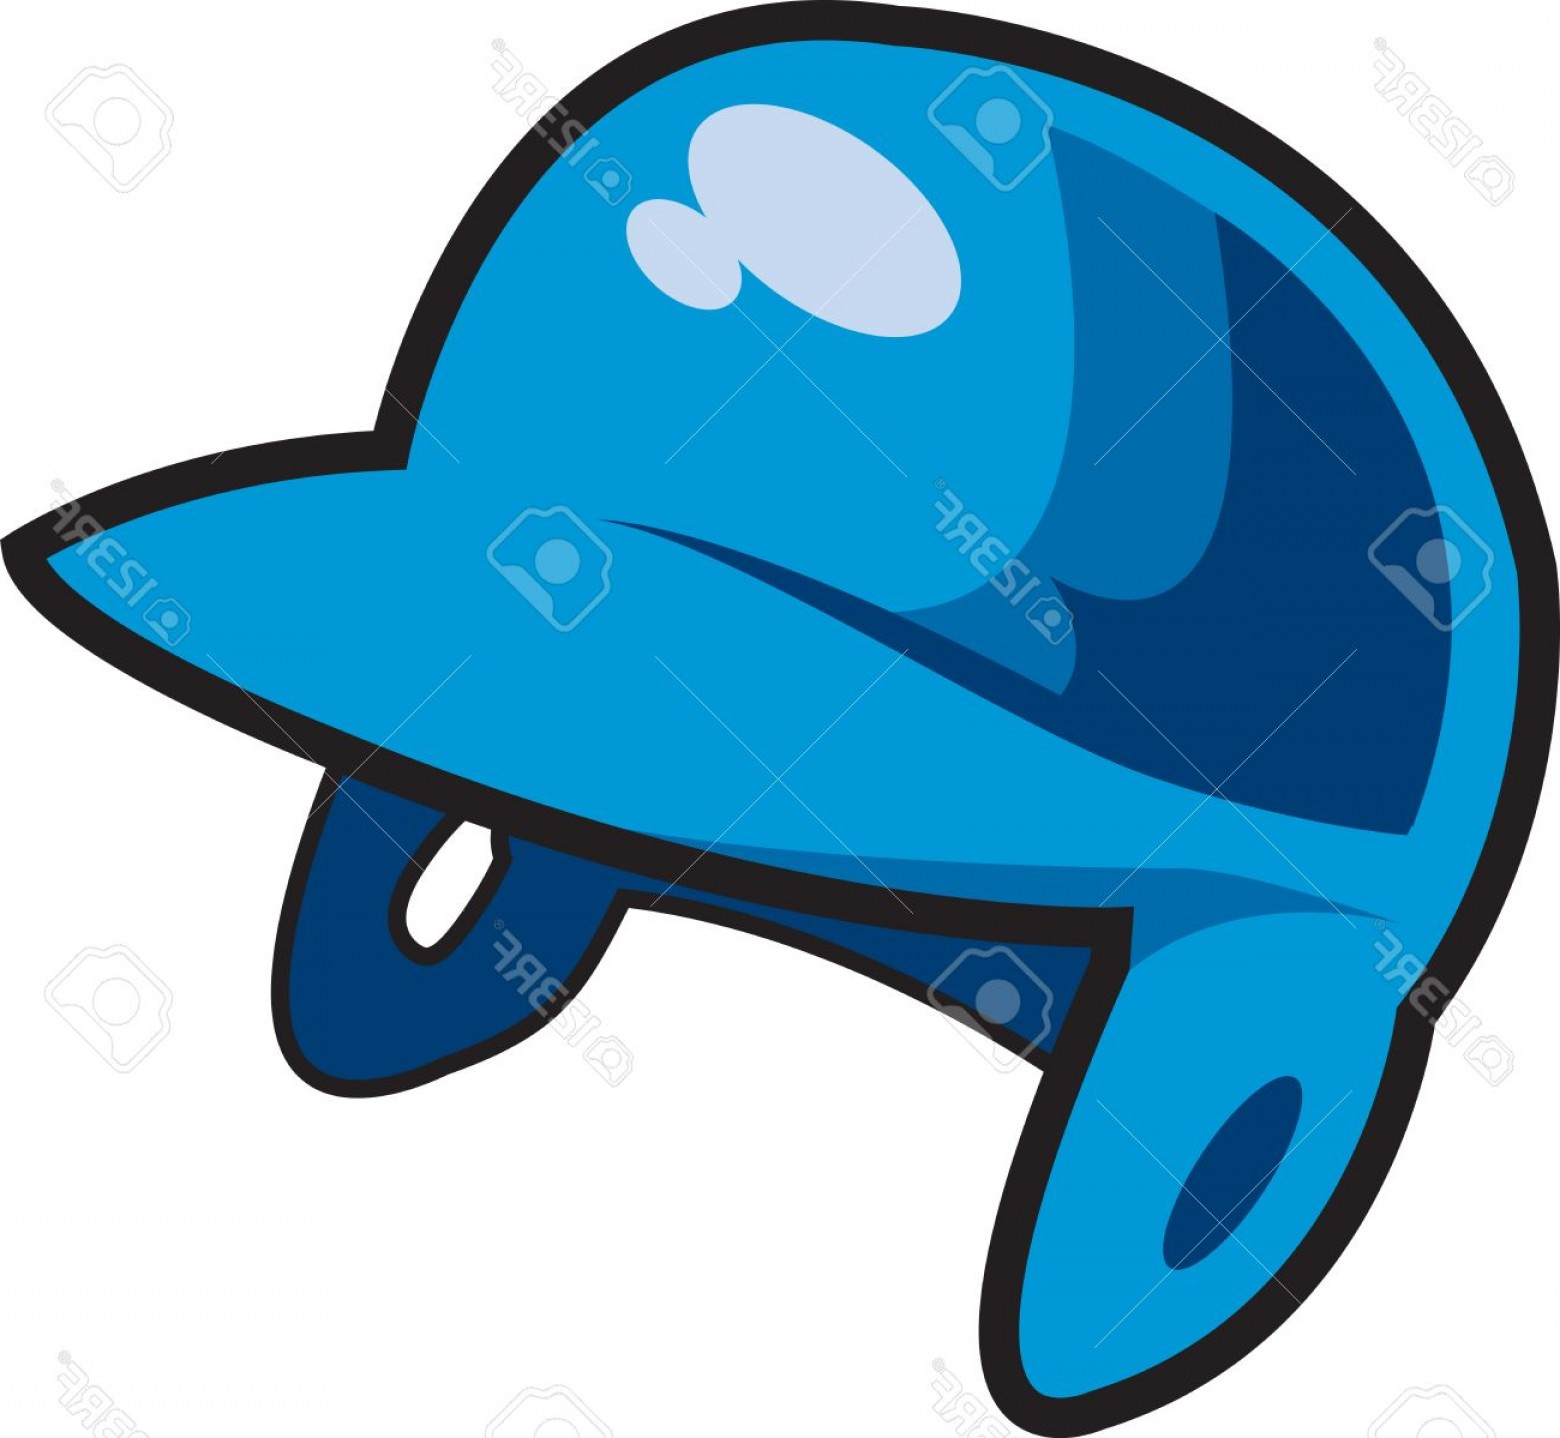 Little League Baseball Vector Logo No Text: Photoblue Batter S Helmet For Baseball Softball Or Little League